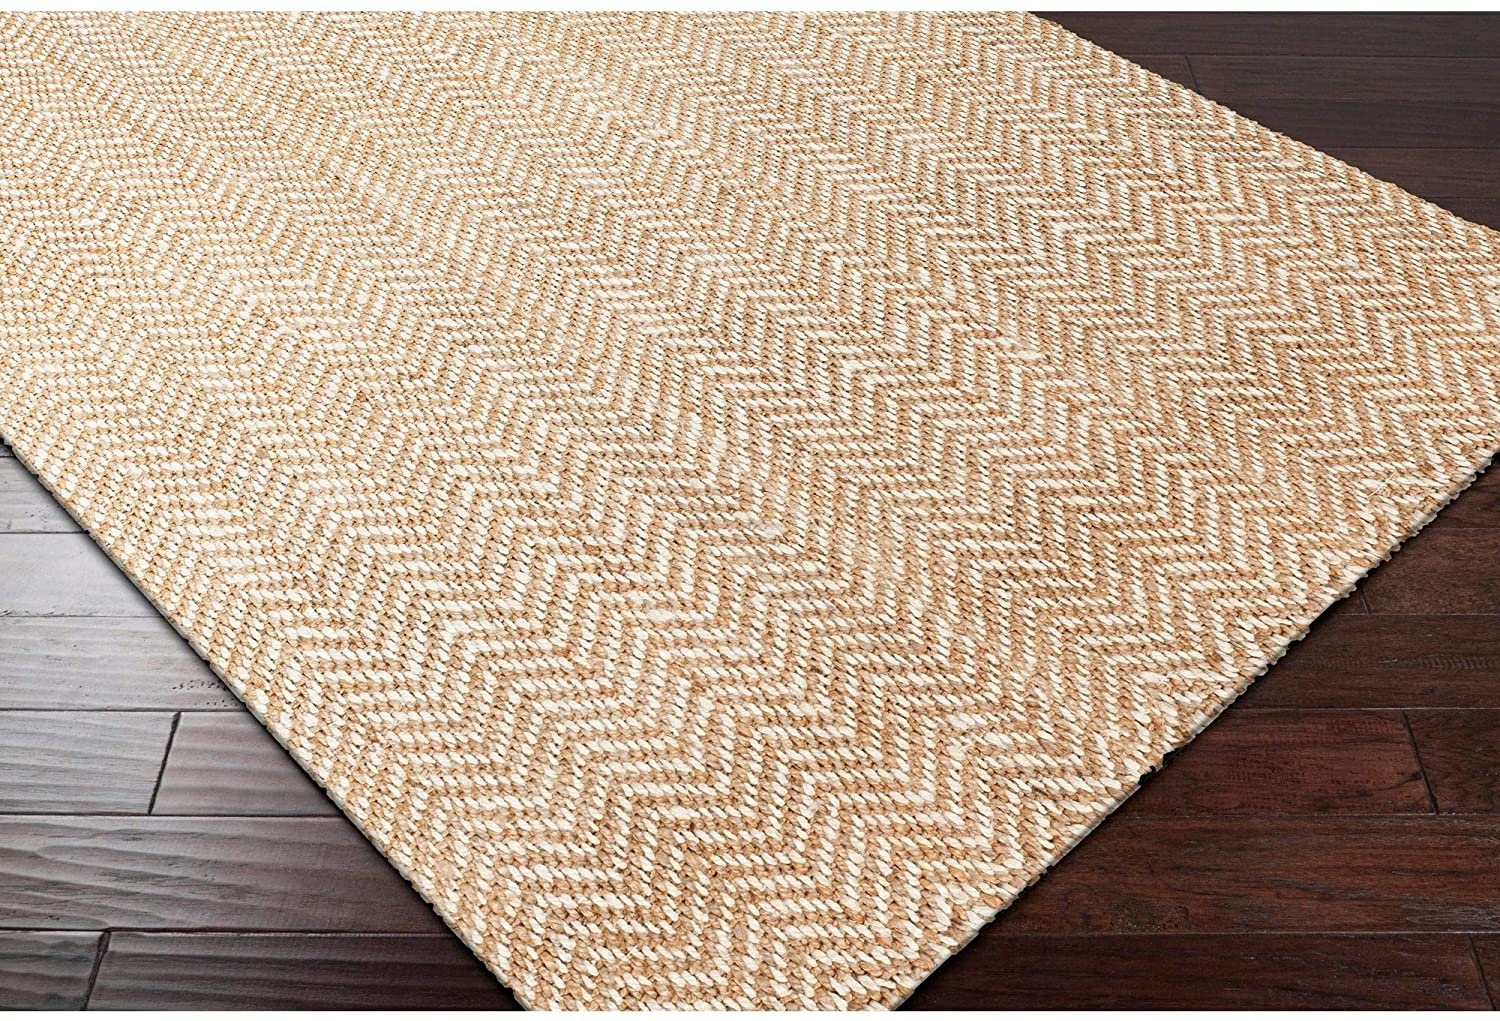 "Hand Woven Wheat Jute Tan Natural Fiber Chevron Area Rug 3'3"" X 5'3"" Brown White Geometric Casual Rectangle Organic Latex Free Handmade"